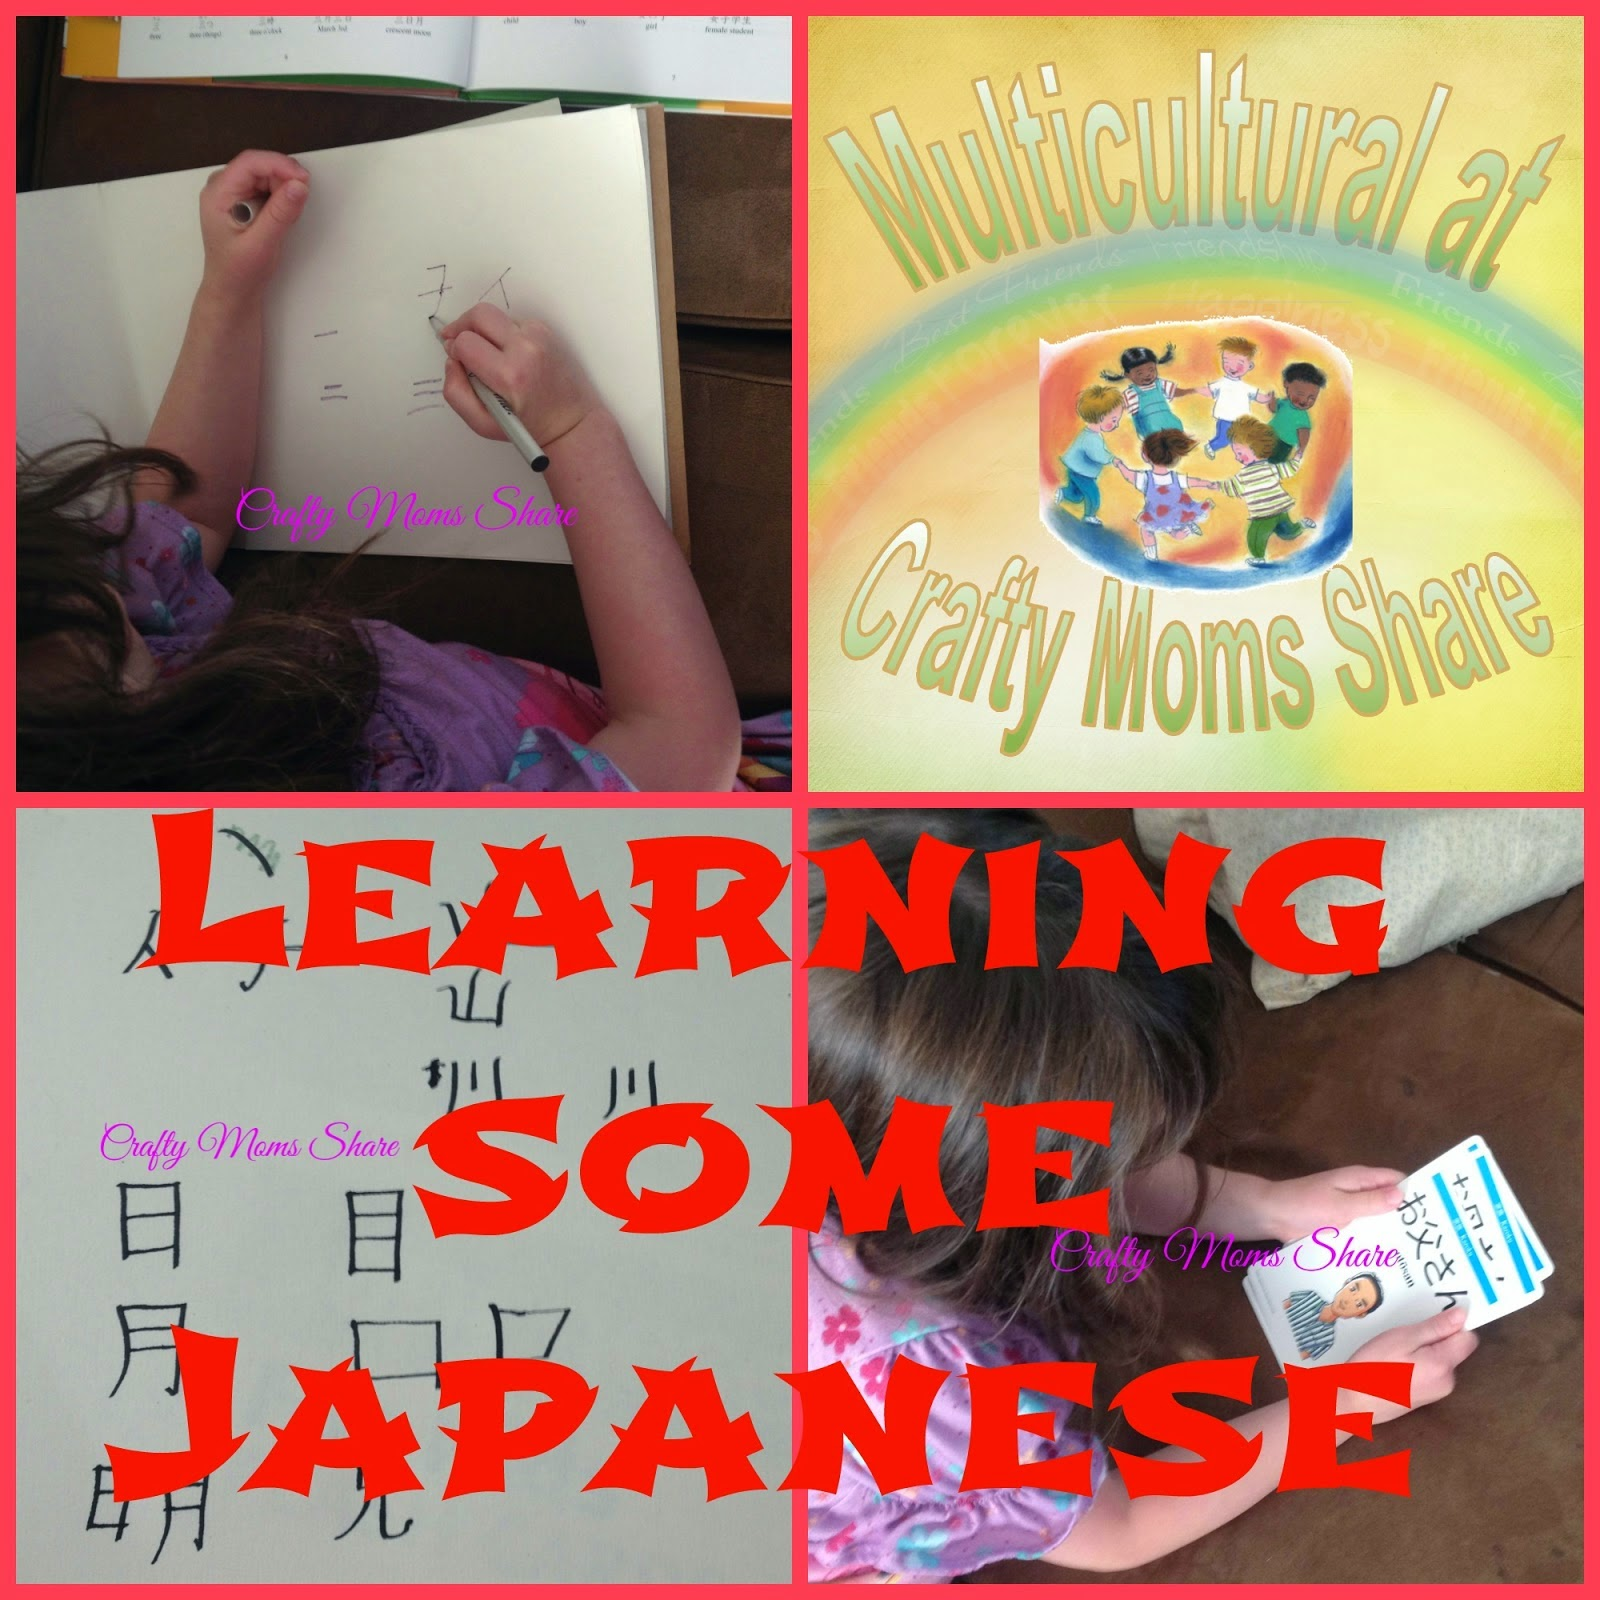 http://craftymomsshare.blogspot.com/2014/08/learning-some-japanese-book-reviews.html